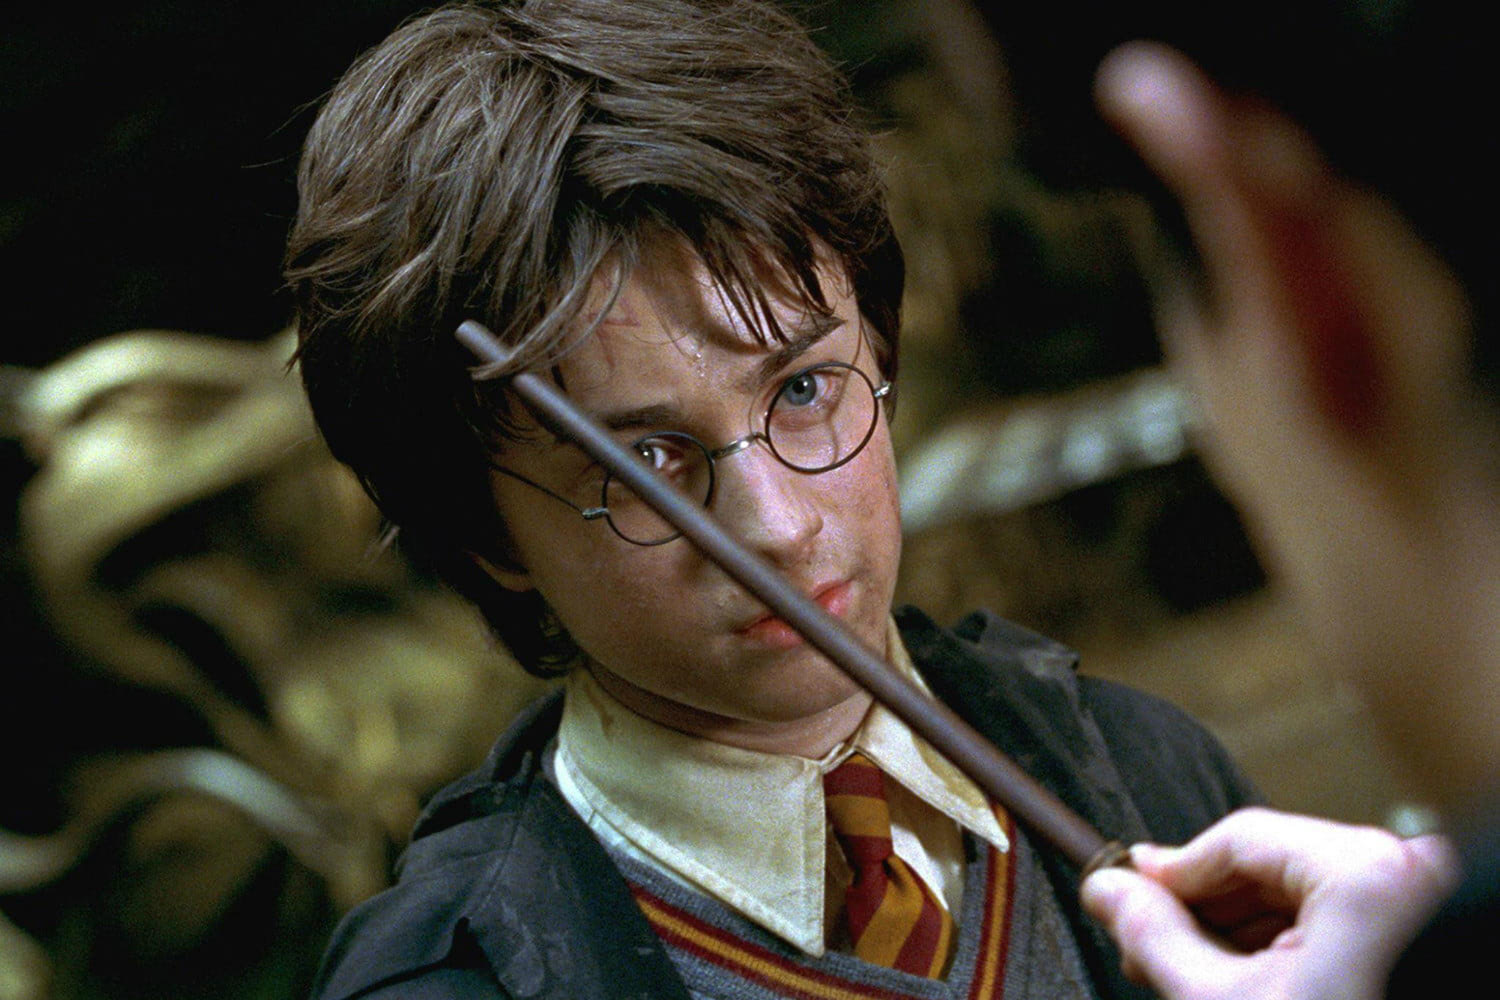 Tom Riddle touches Harry's scar